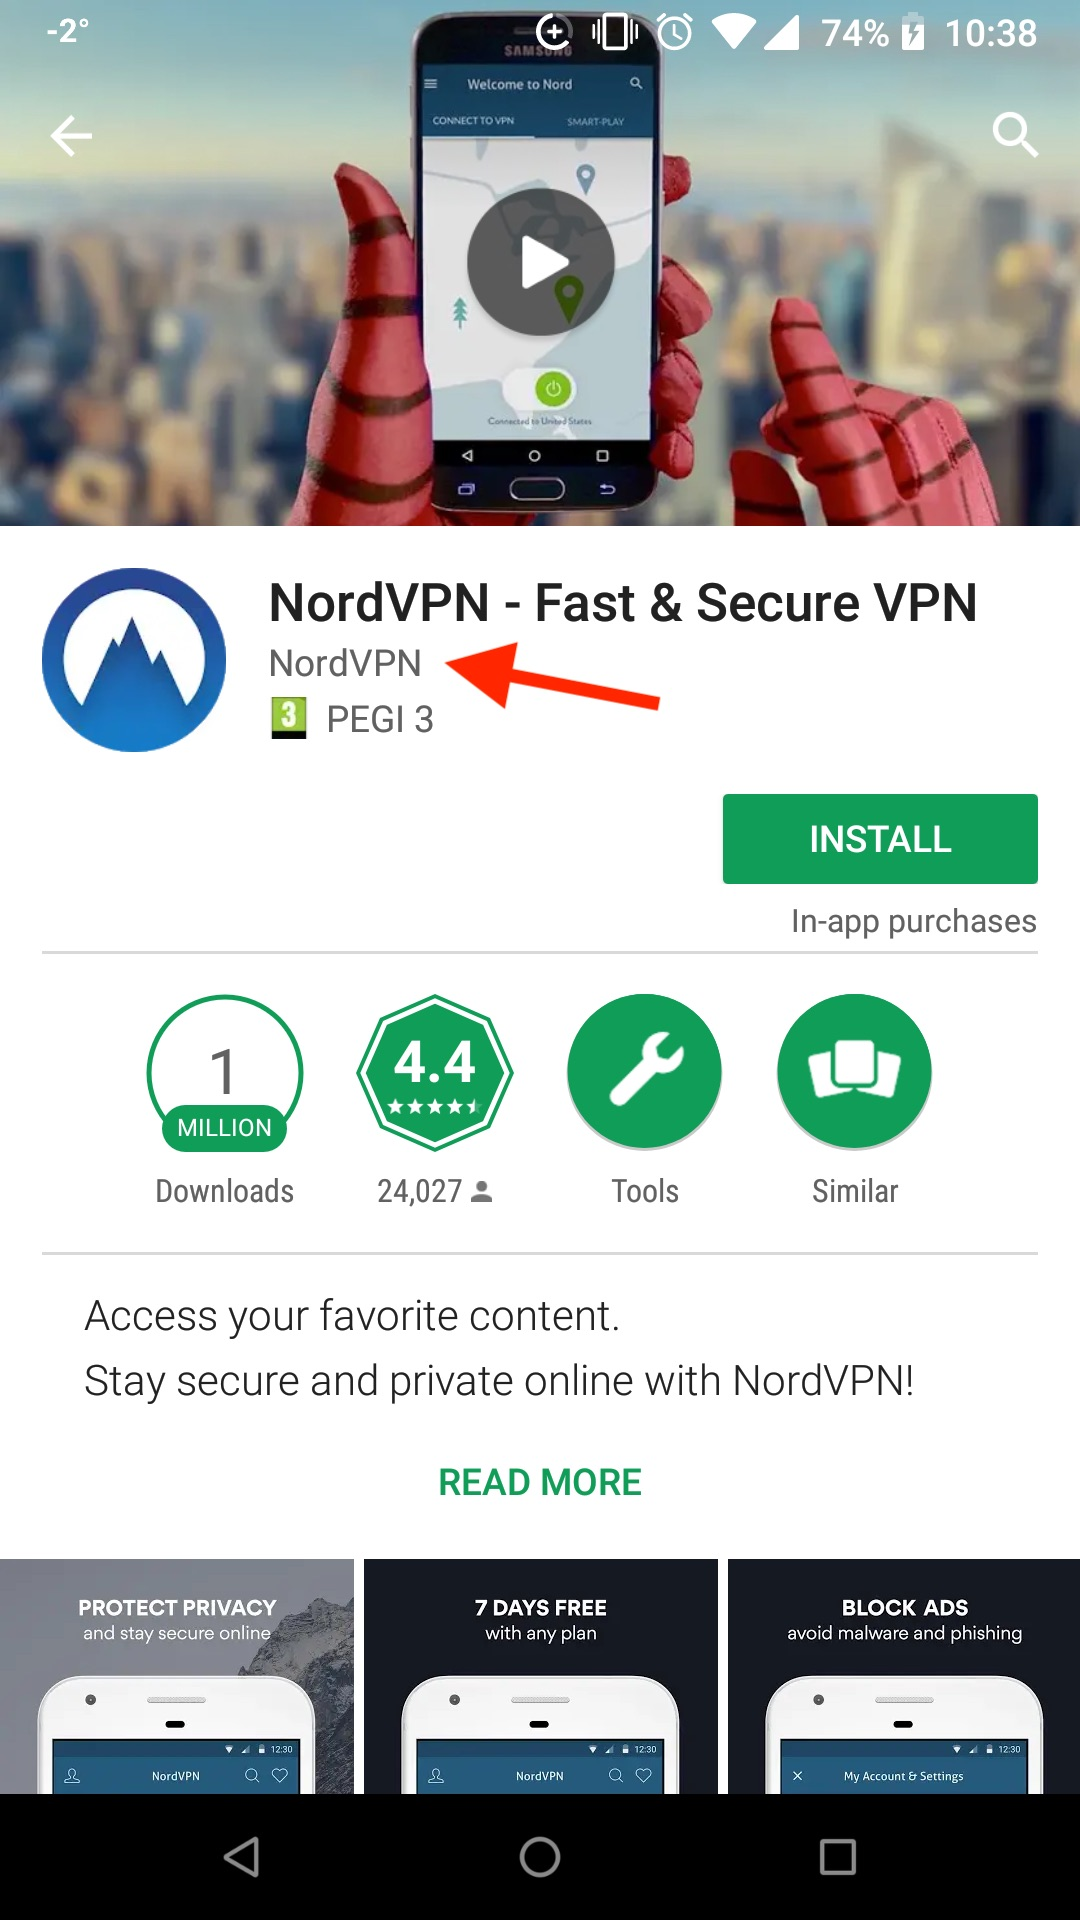 Make sure the app is owned by NordVPN